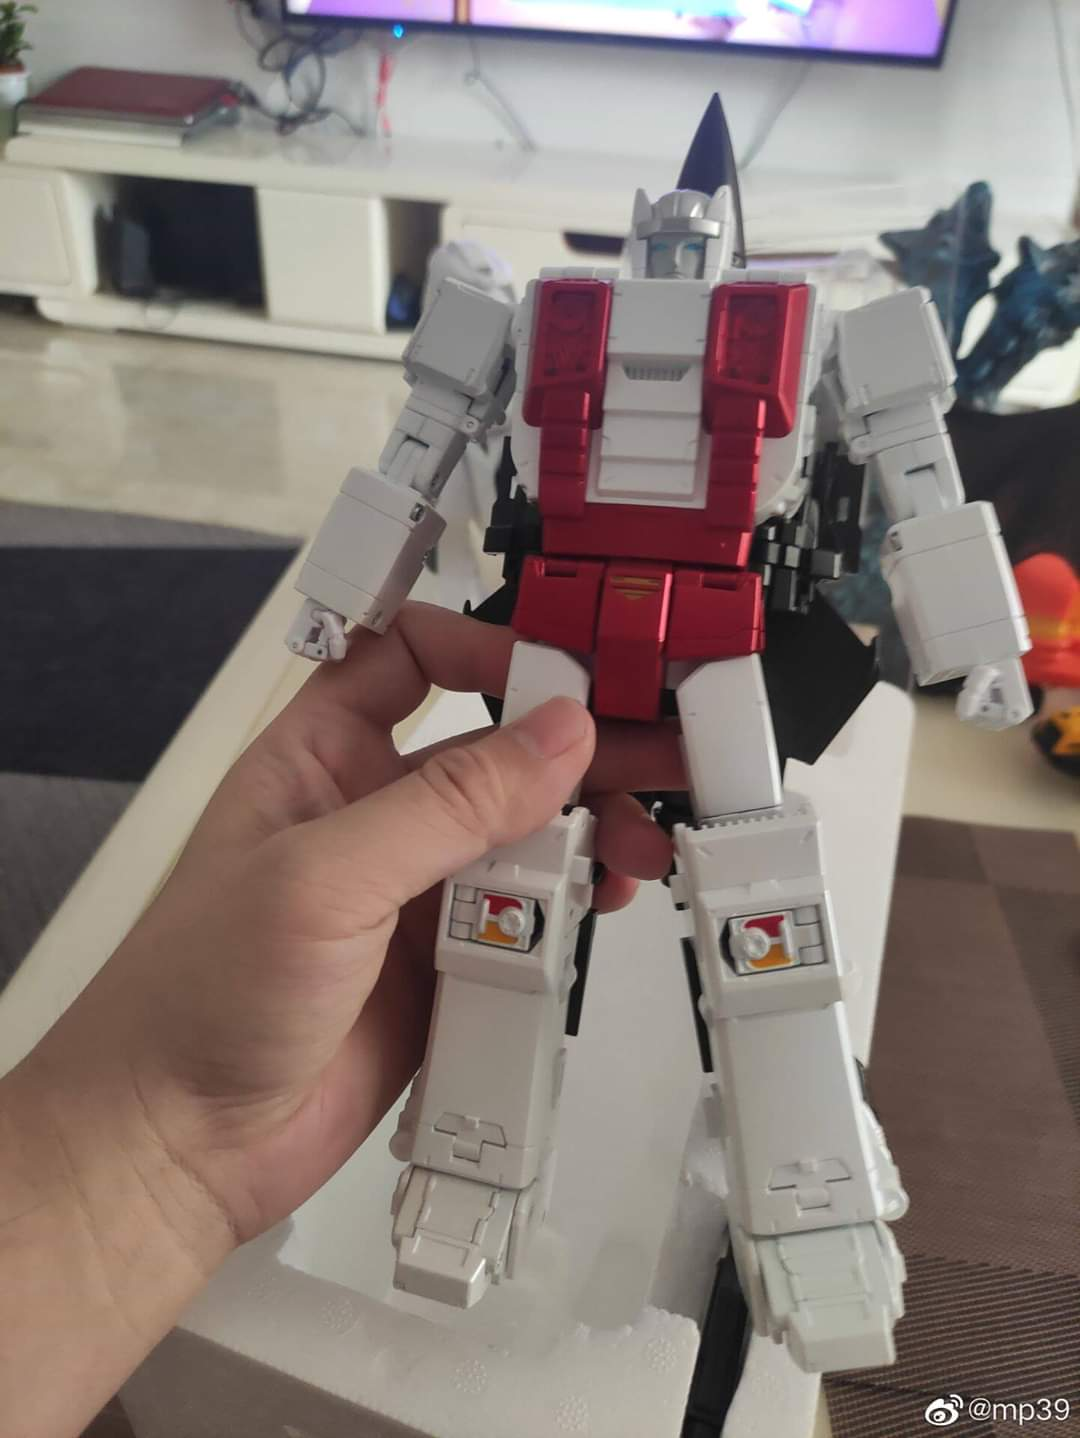 [Fanstoys] Produit Tiers - Jouet FT-30 Ethereaon (FT-30A à FT-30E) - aka Superion - Page 3 MIANXMw7_o